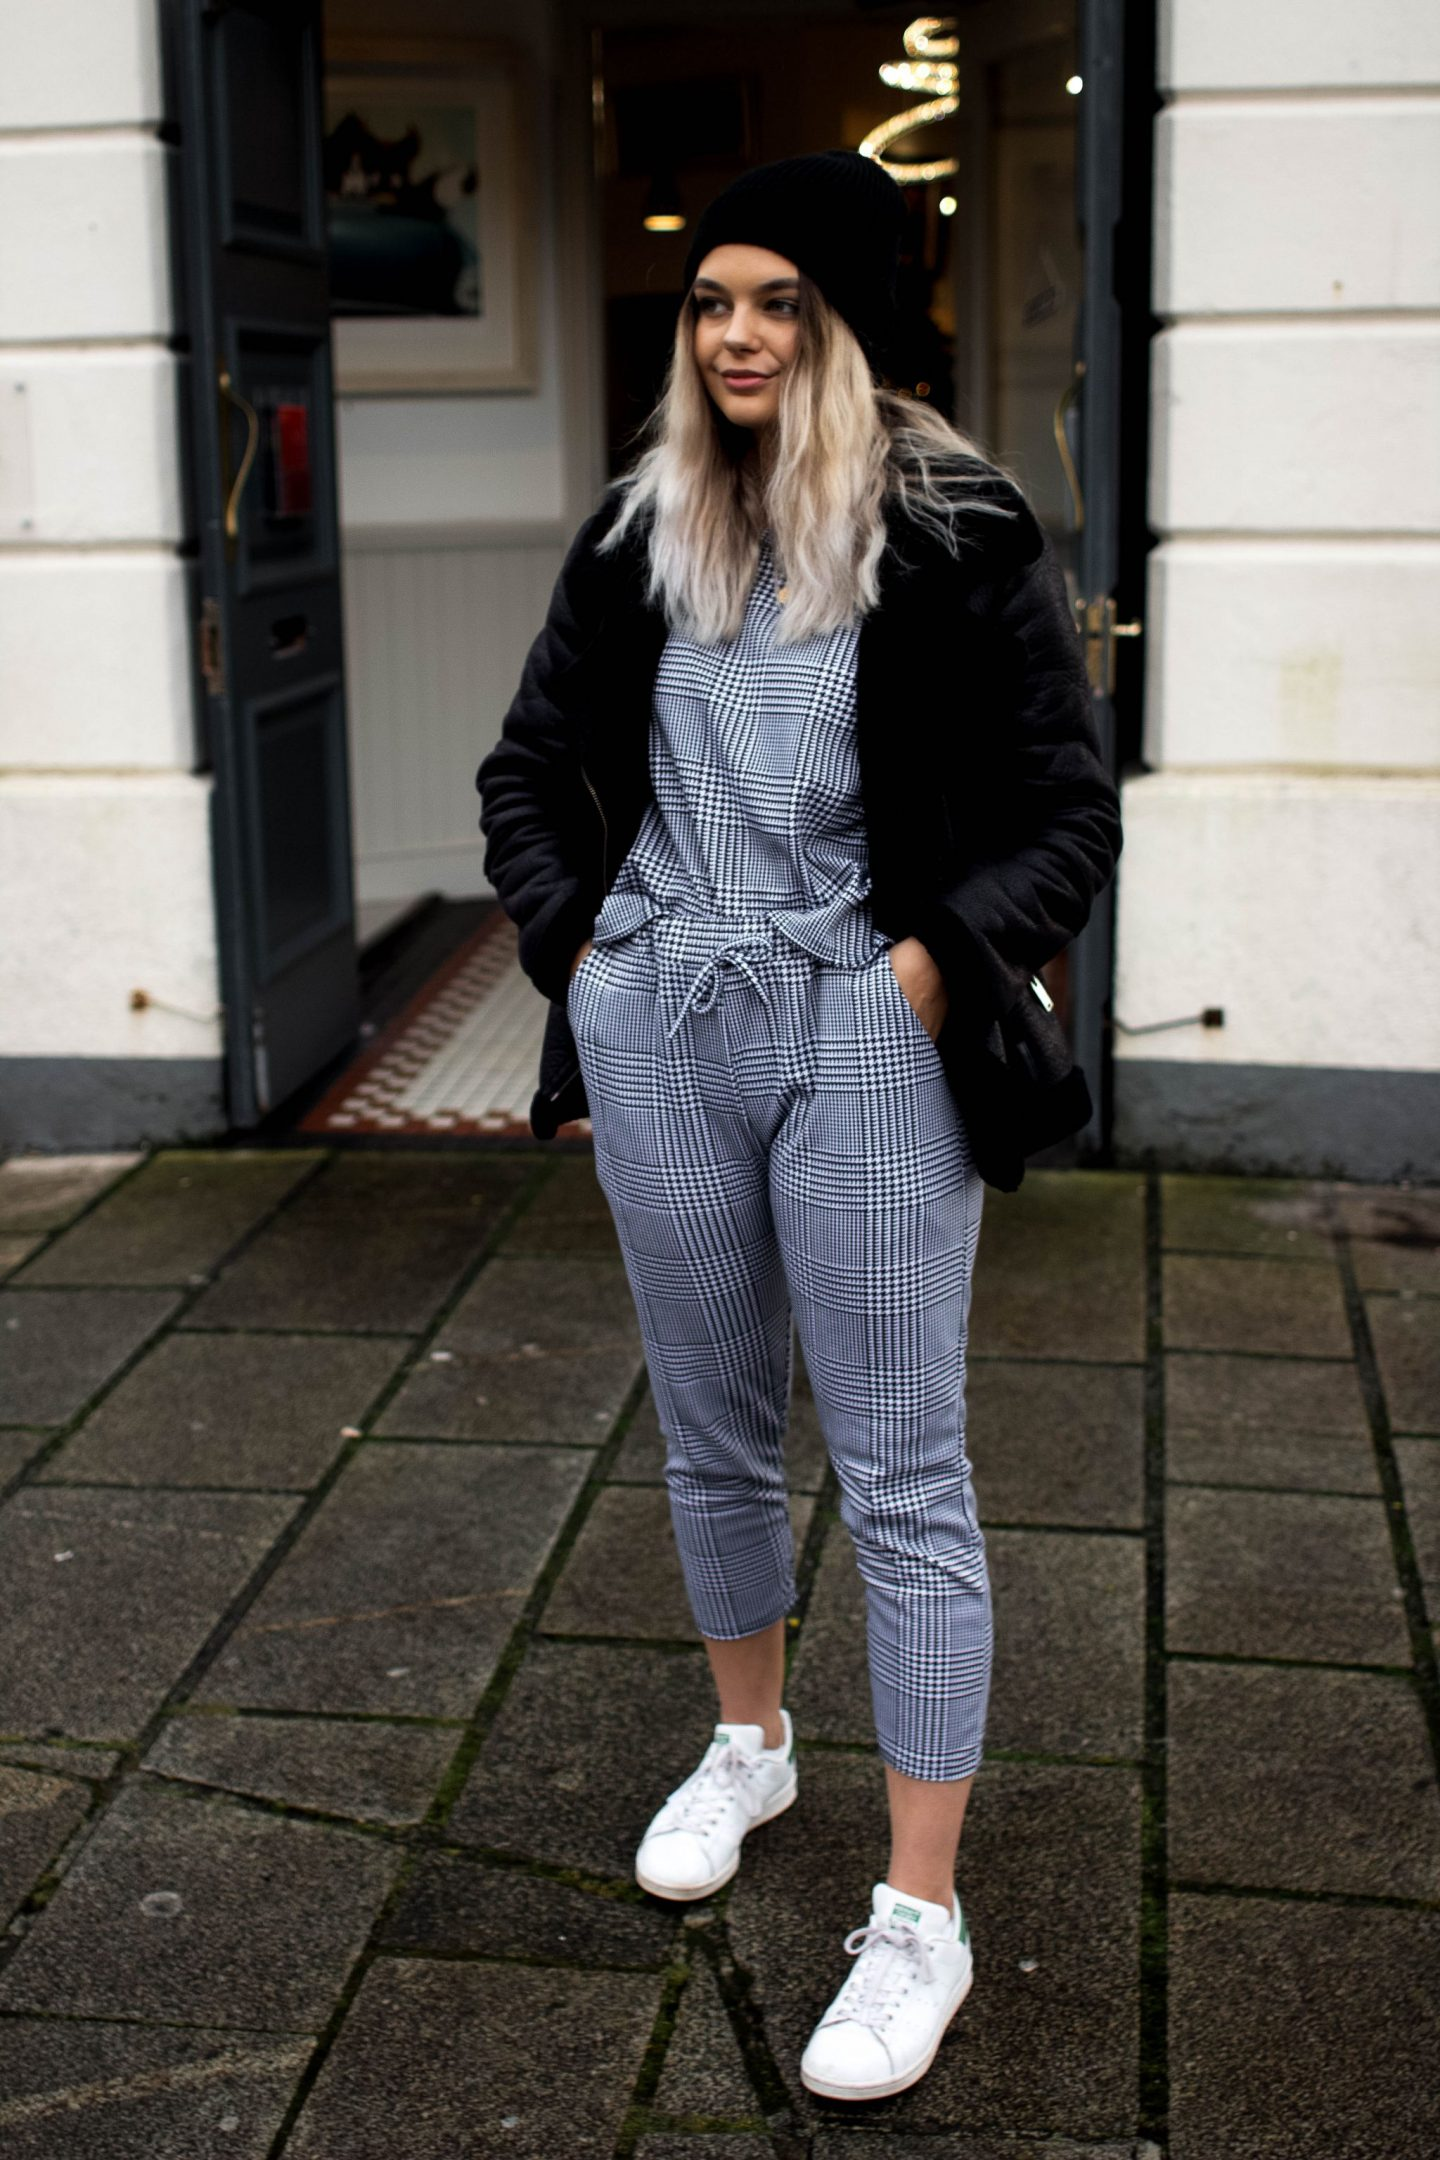 How To Wear A Tracksuit And Still Look Stylish